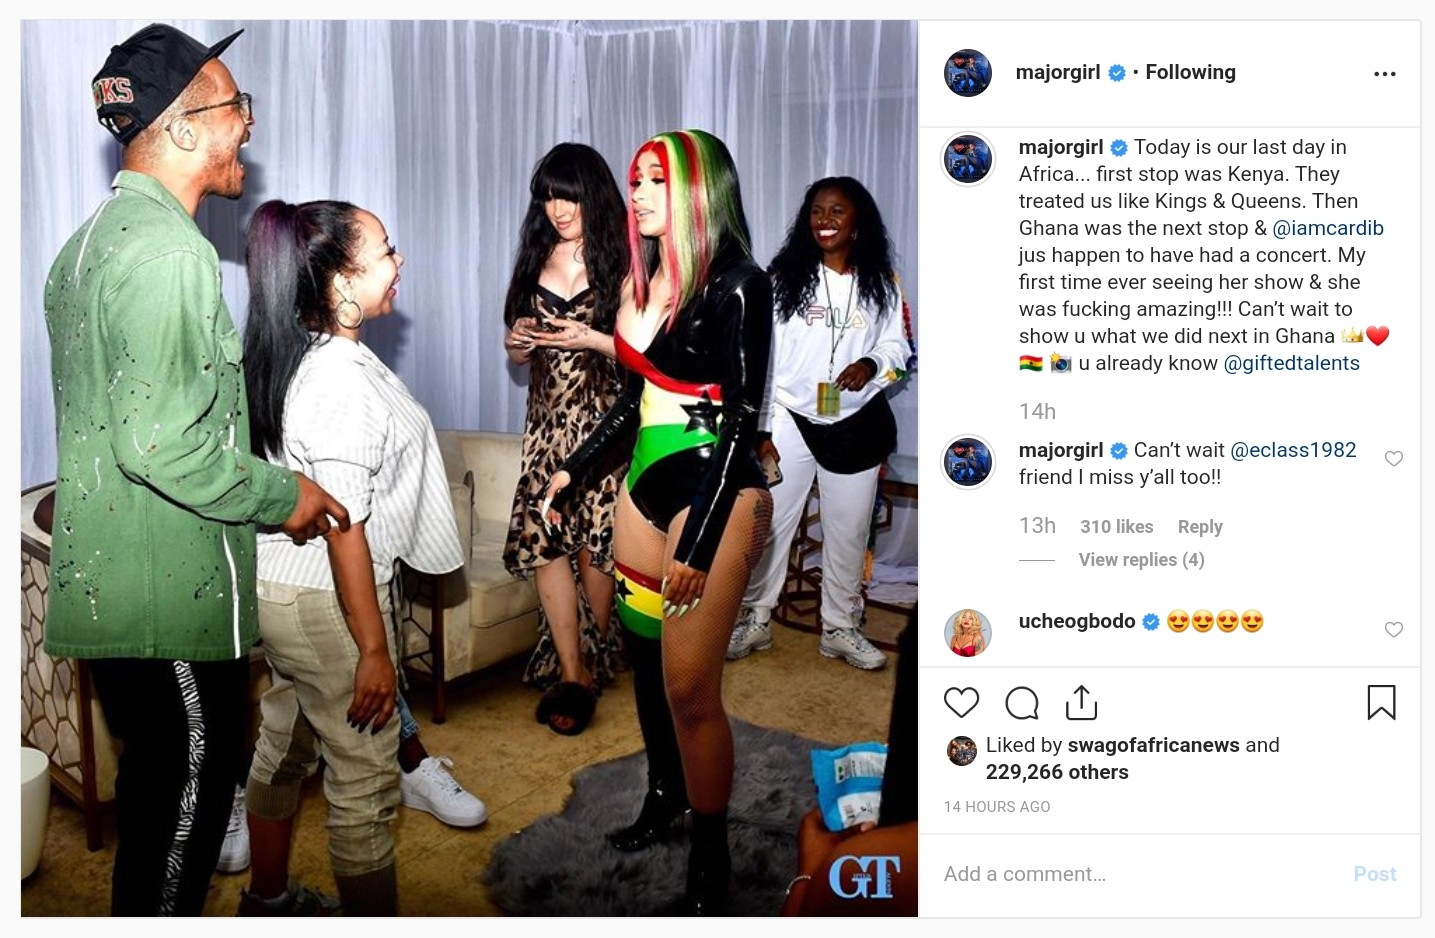 Photo Of T.I. And Tiny With Cardi B In Ghana (3)